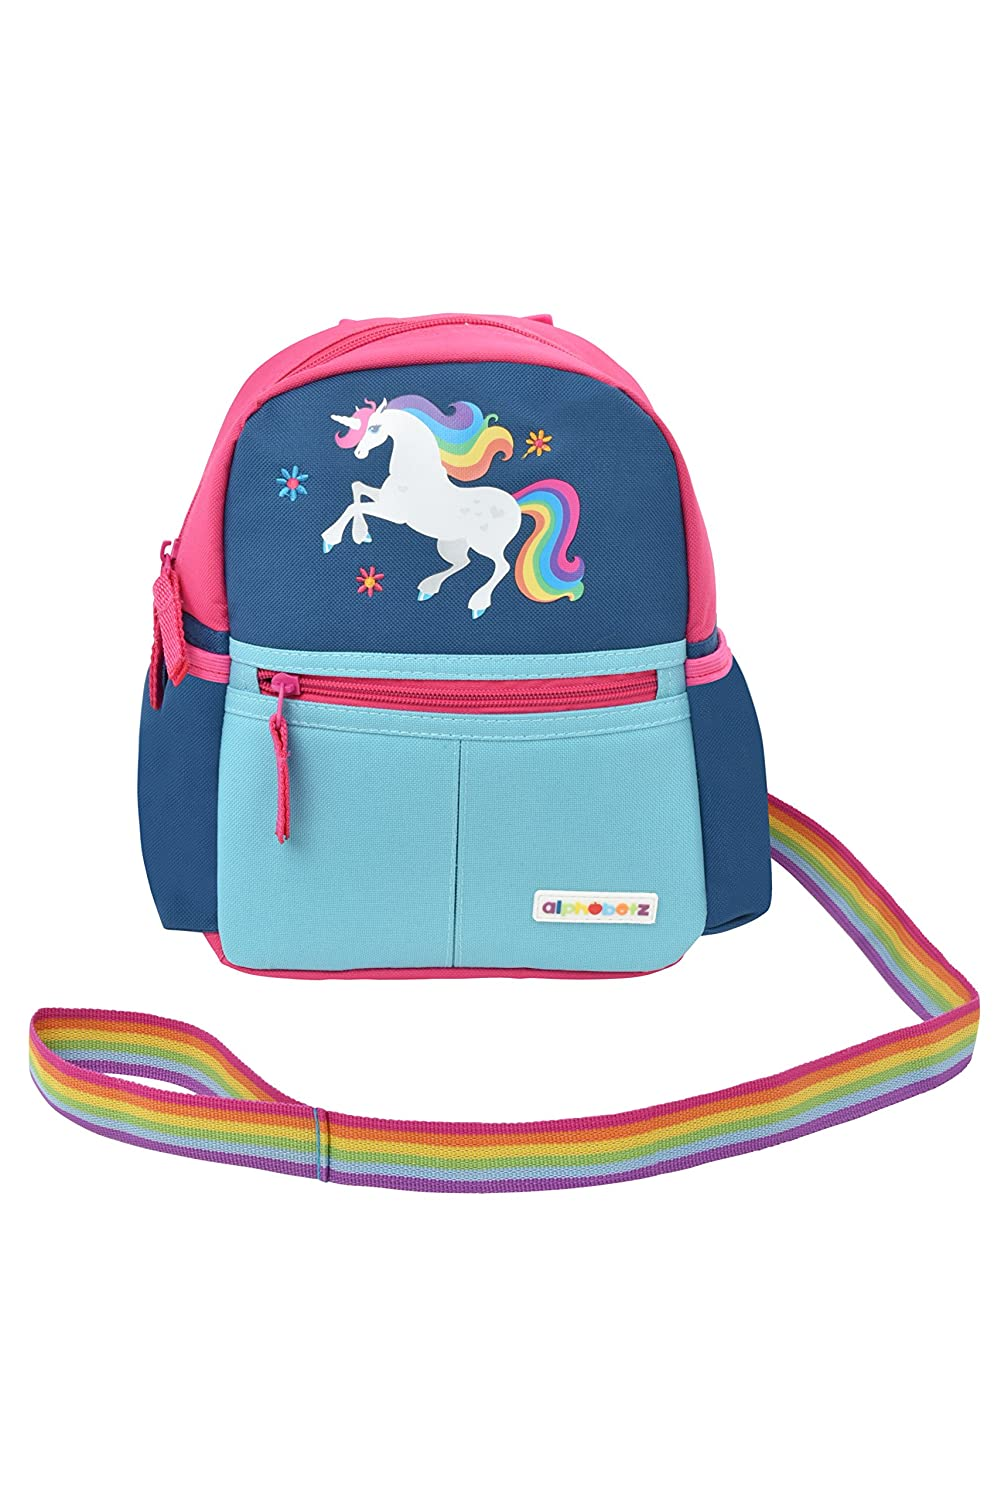 Alphabetz Unicorn Toddler Backpack with Leash, Pink, Blue, Universal Size for Girl